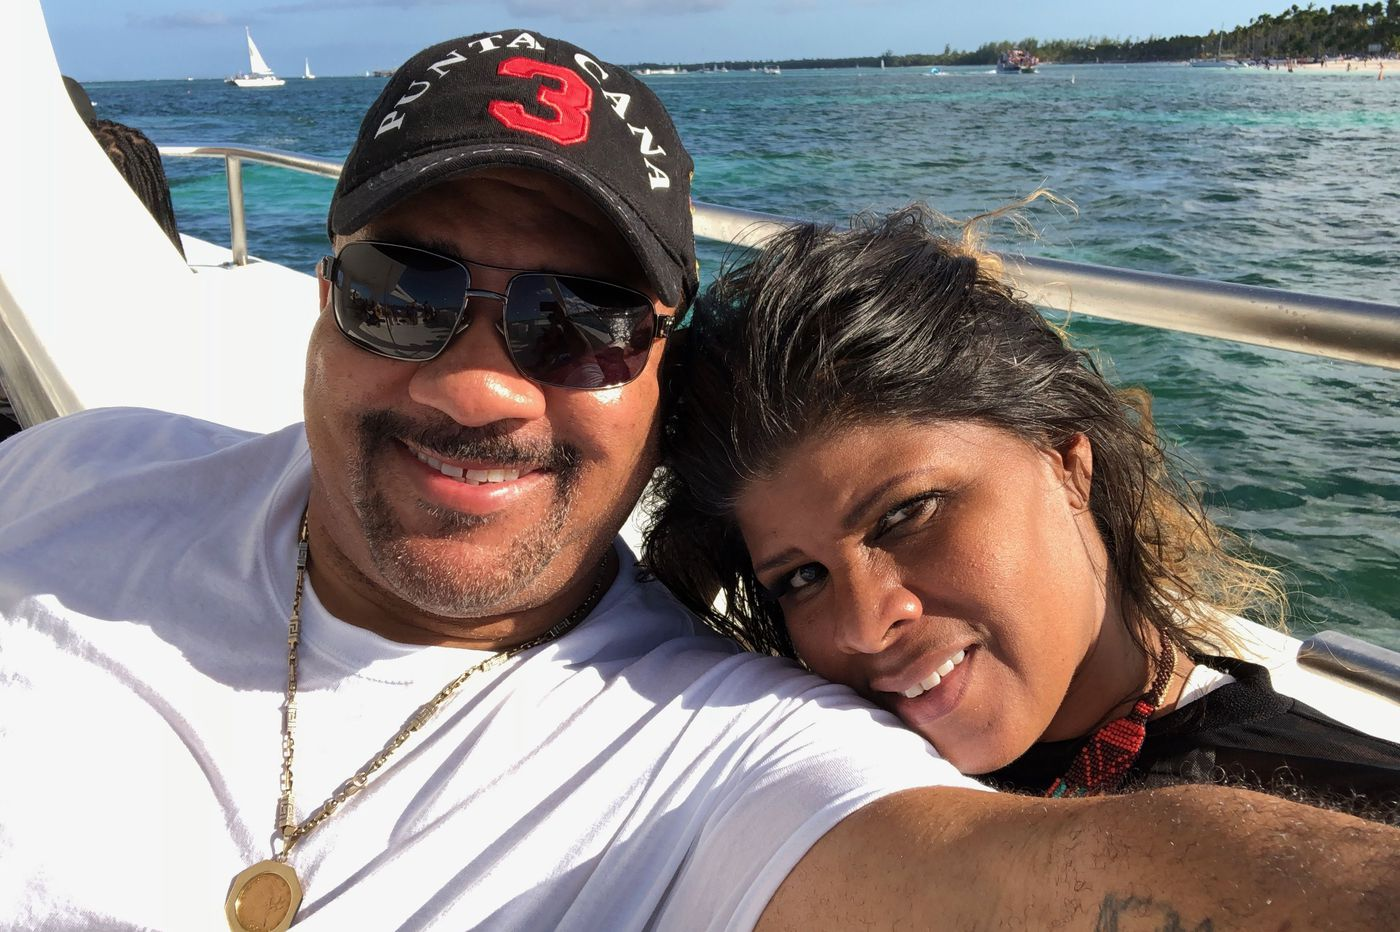 James Walker, 59, loved being a Philly police officer and traveling with his wife